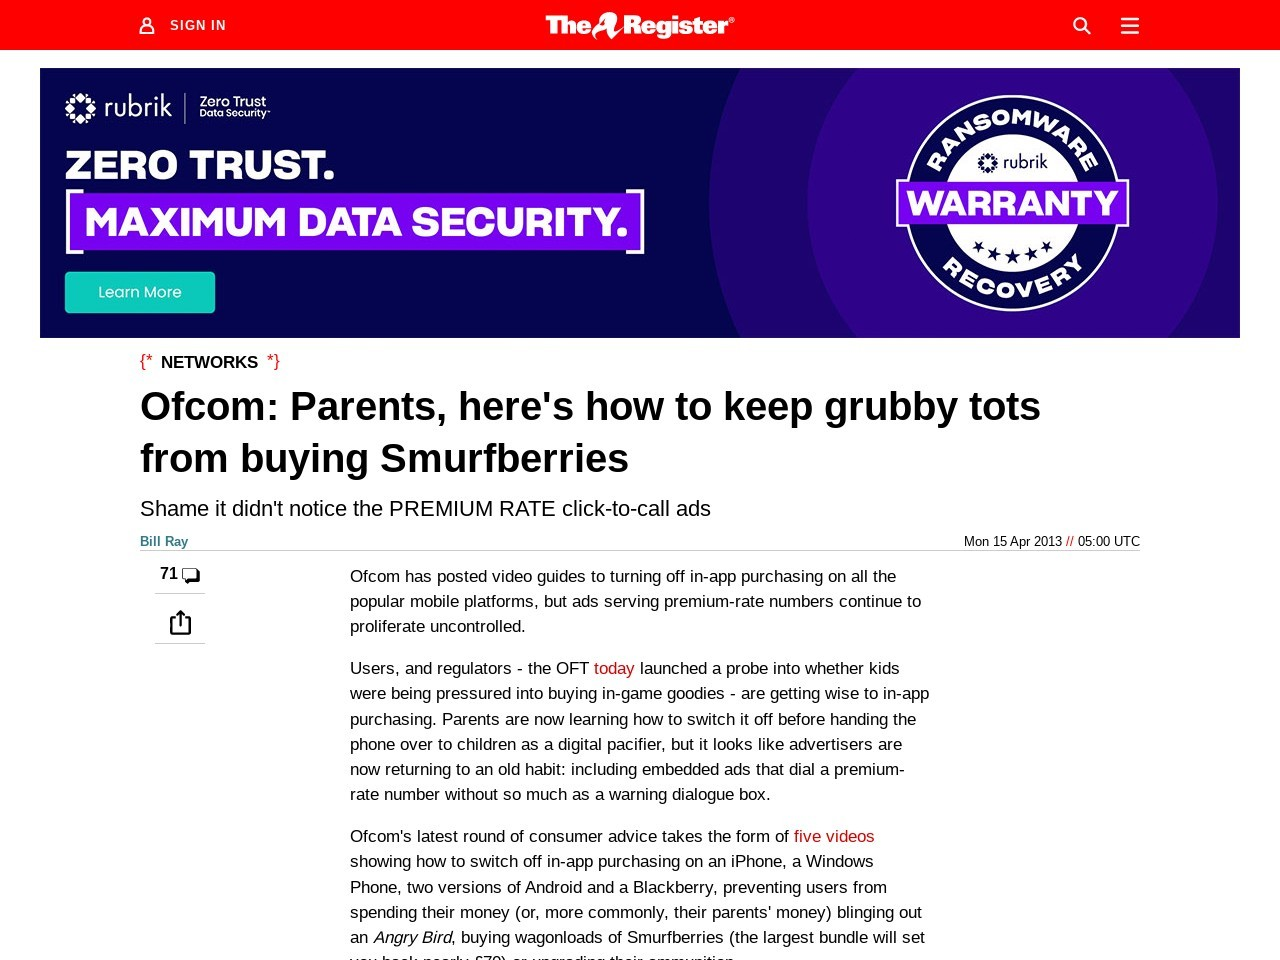 Ofcom: Parents, here's how to keep grubby tots from buying Smurfberries